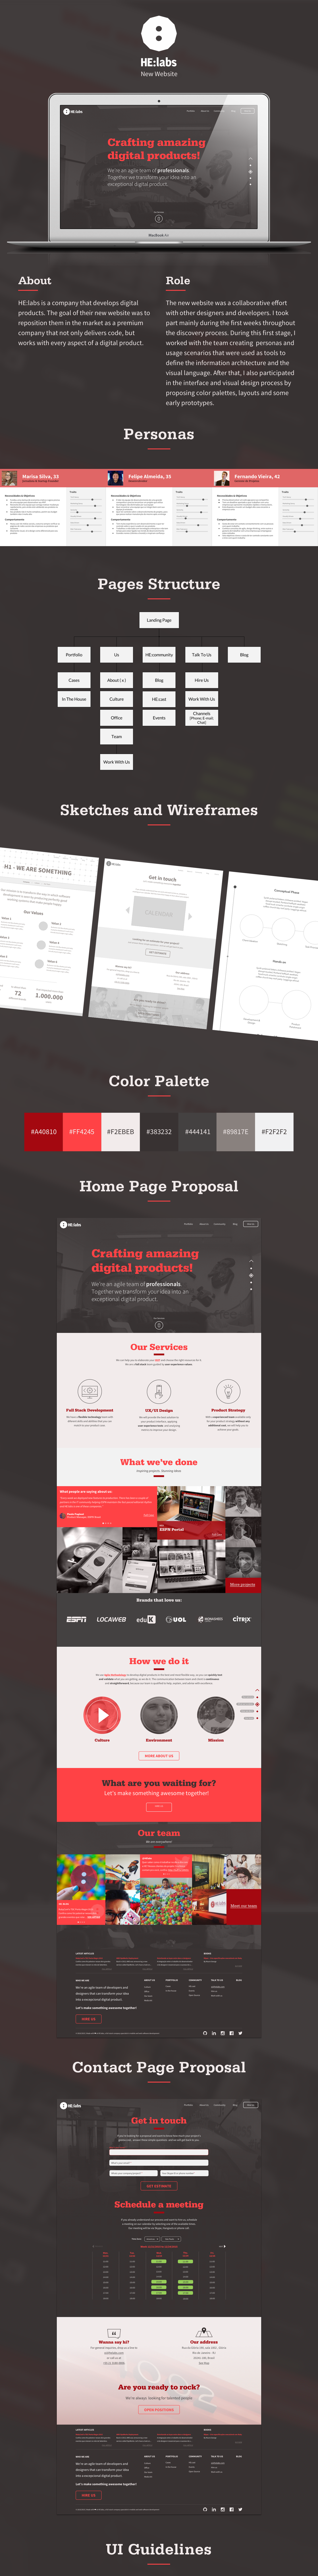 user interface Website digital products